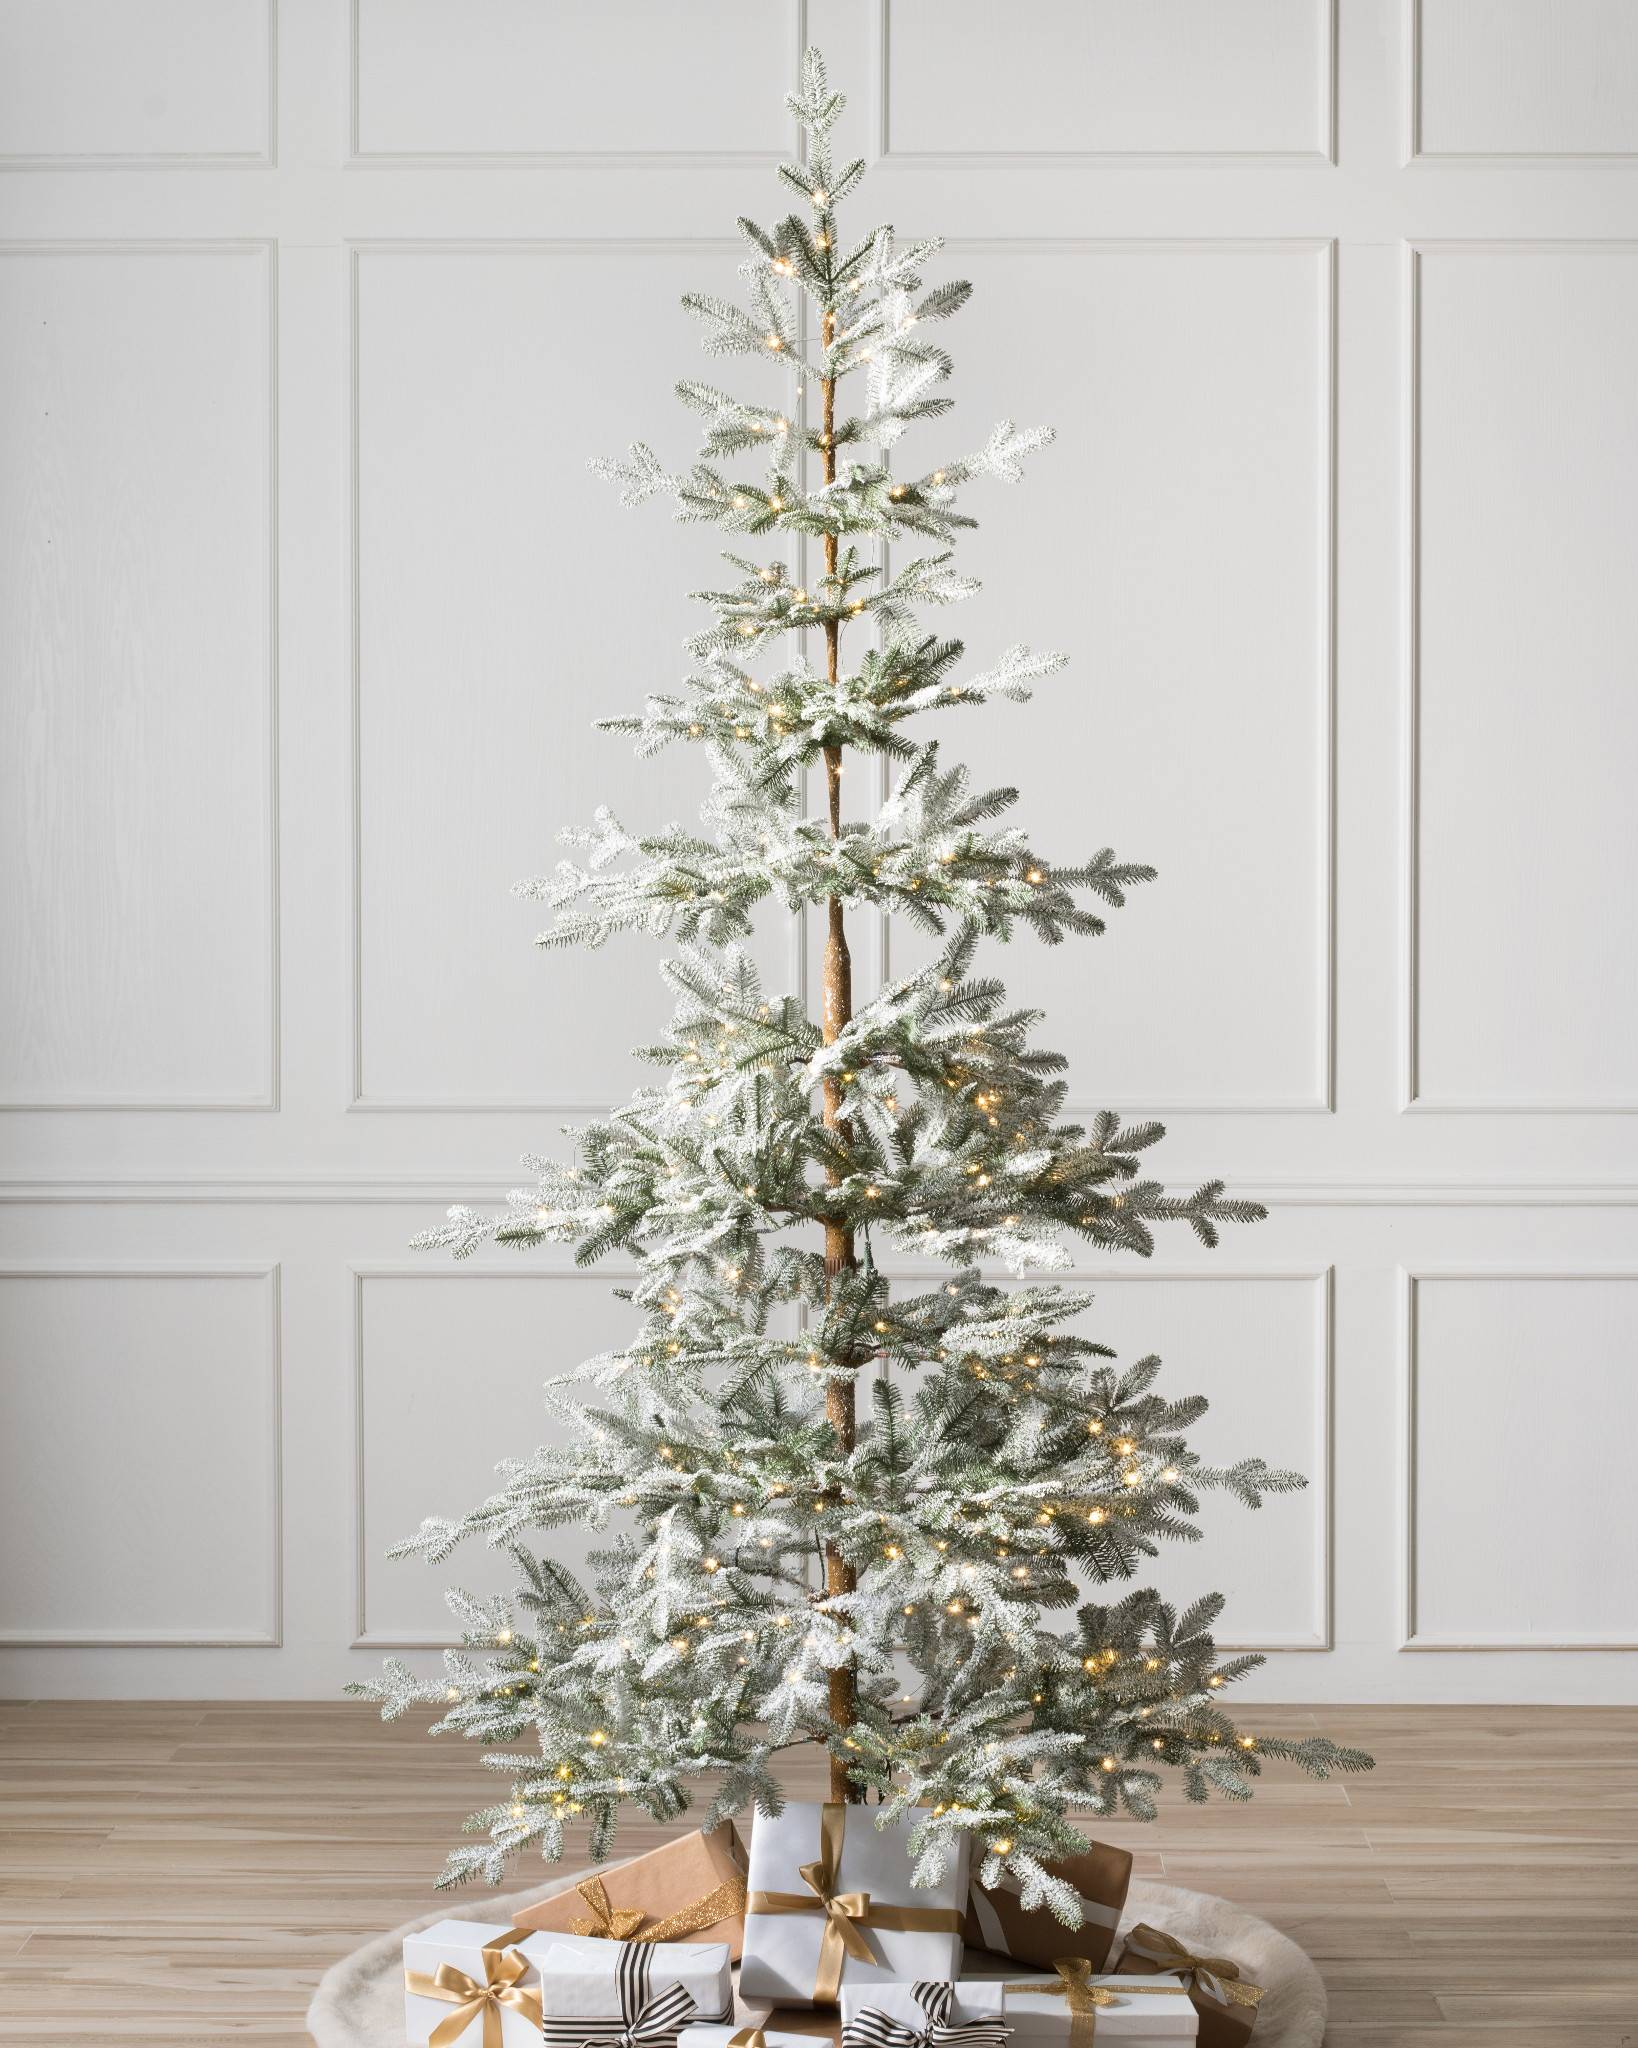 reputable site 9ddcb a4b09 Frosted Alpine Balsam Fir Artificial Christmas Tree | Balsam ...